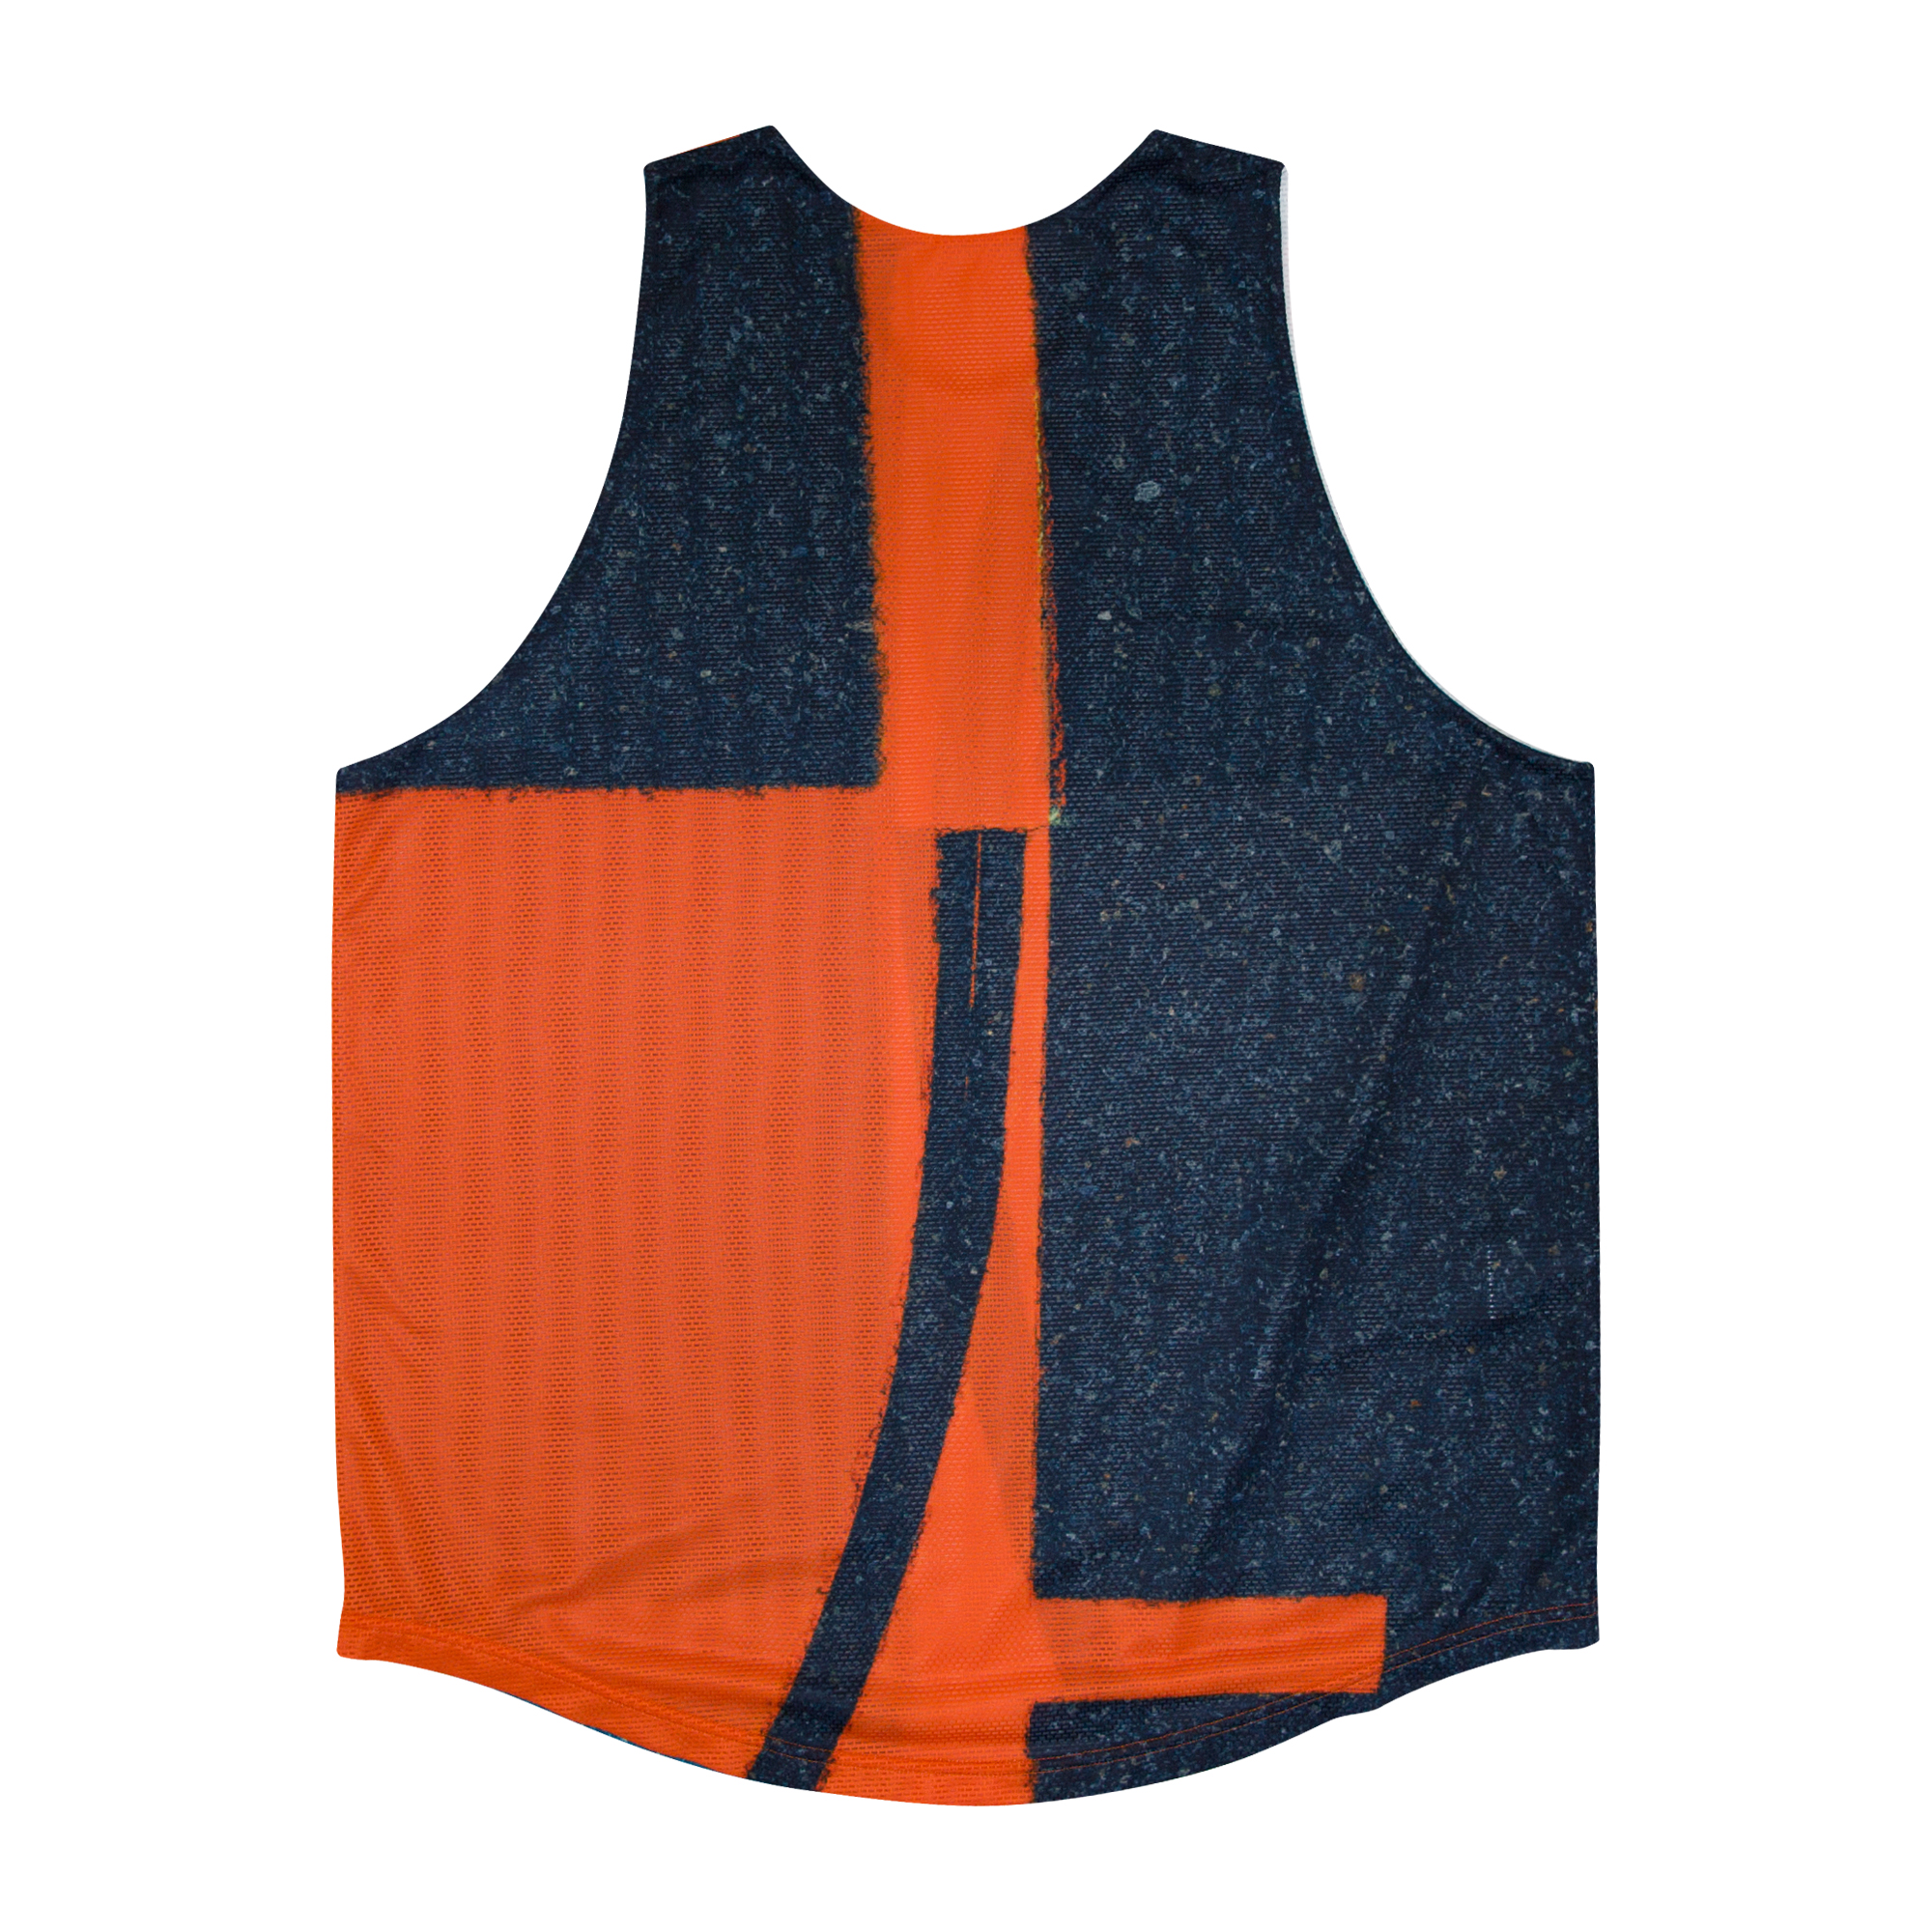 ballaholic【Playground Reversible Tops】